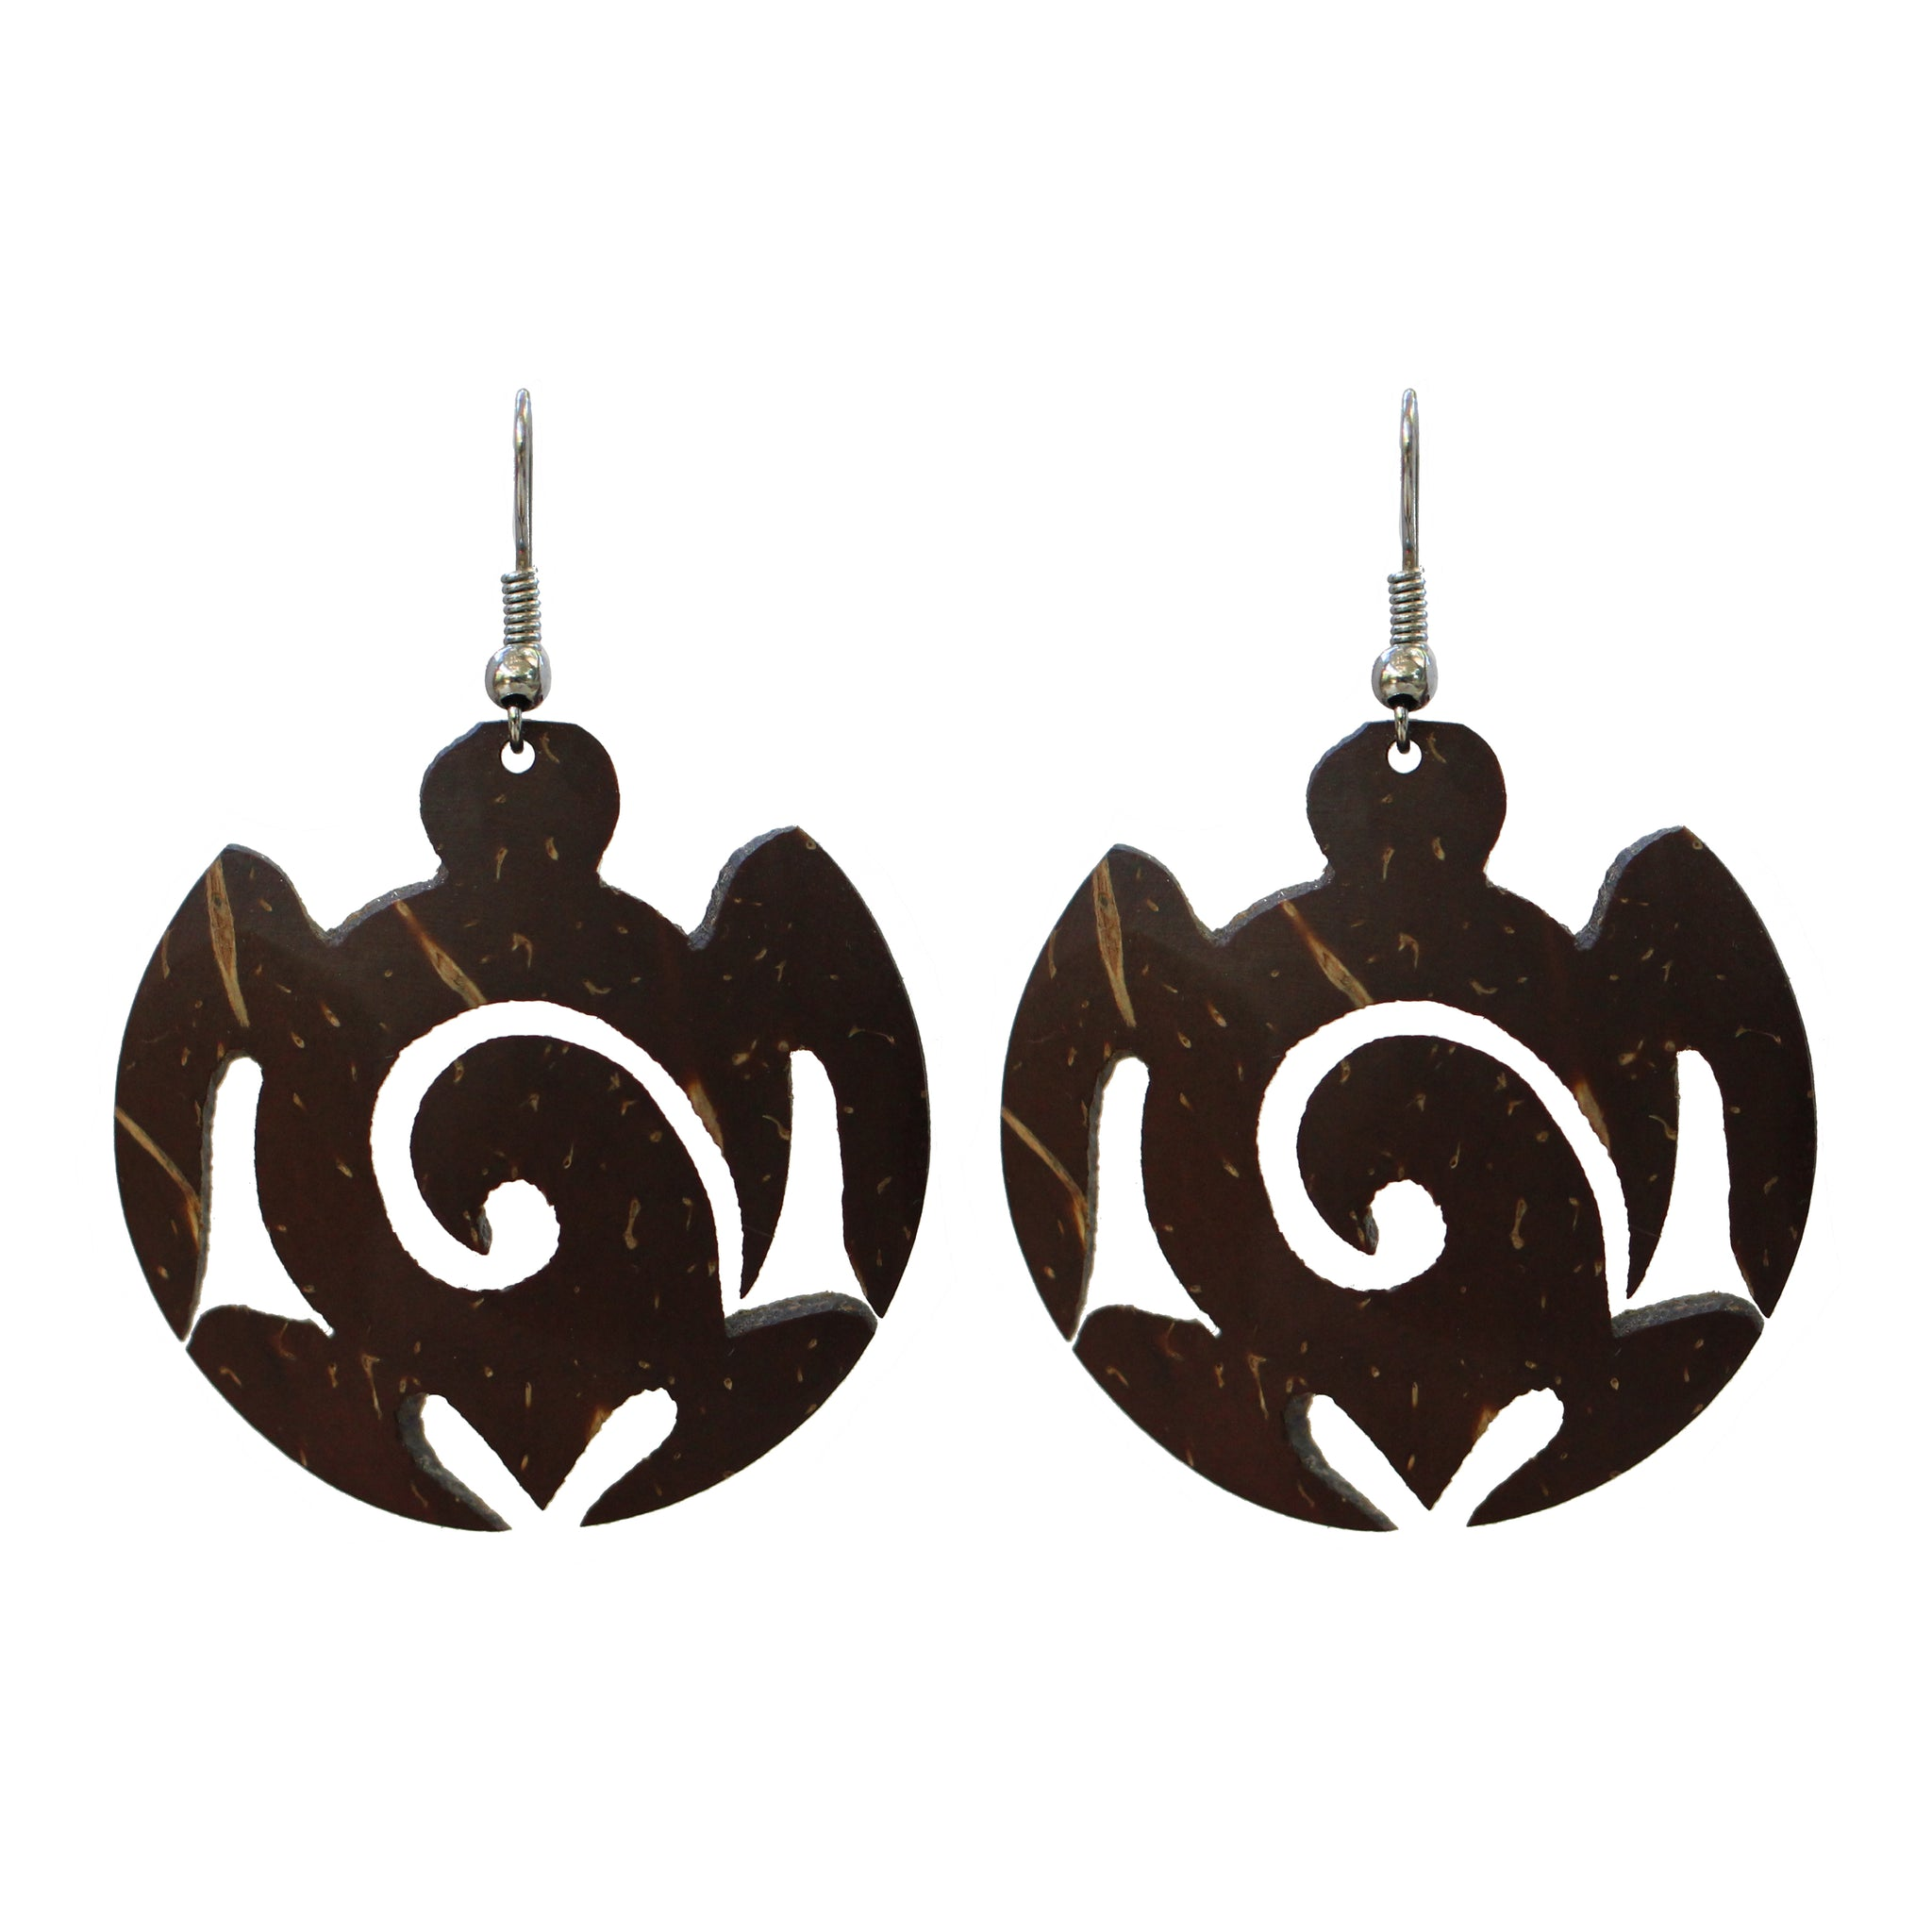 Coconut Earrings - Turtle